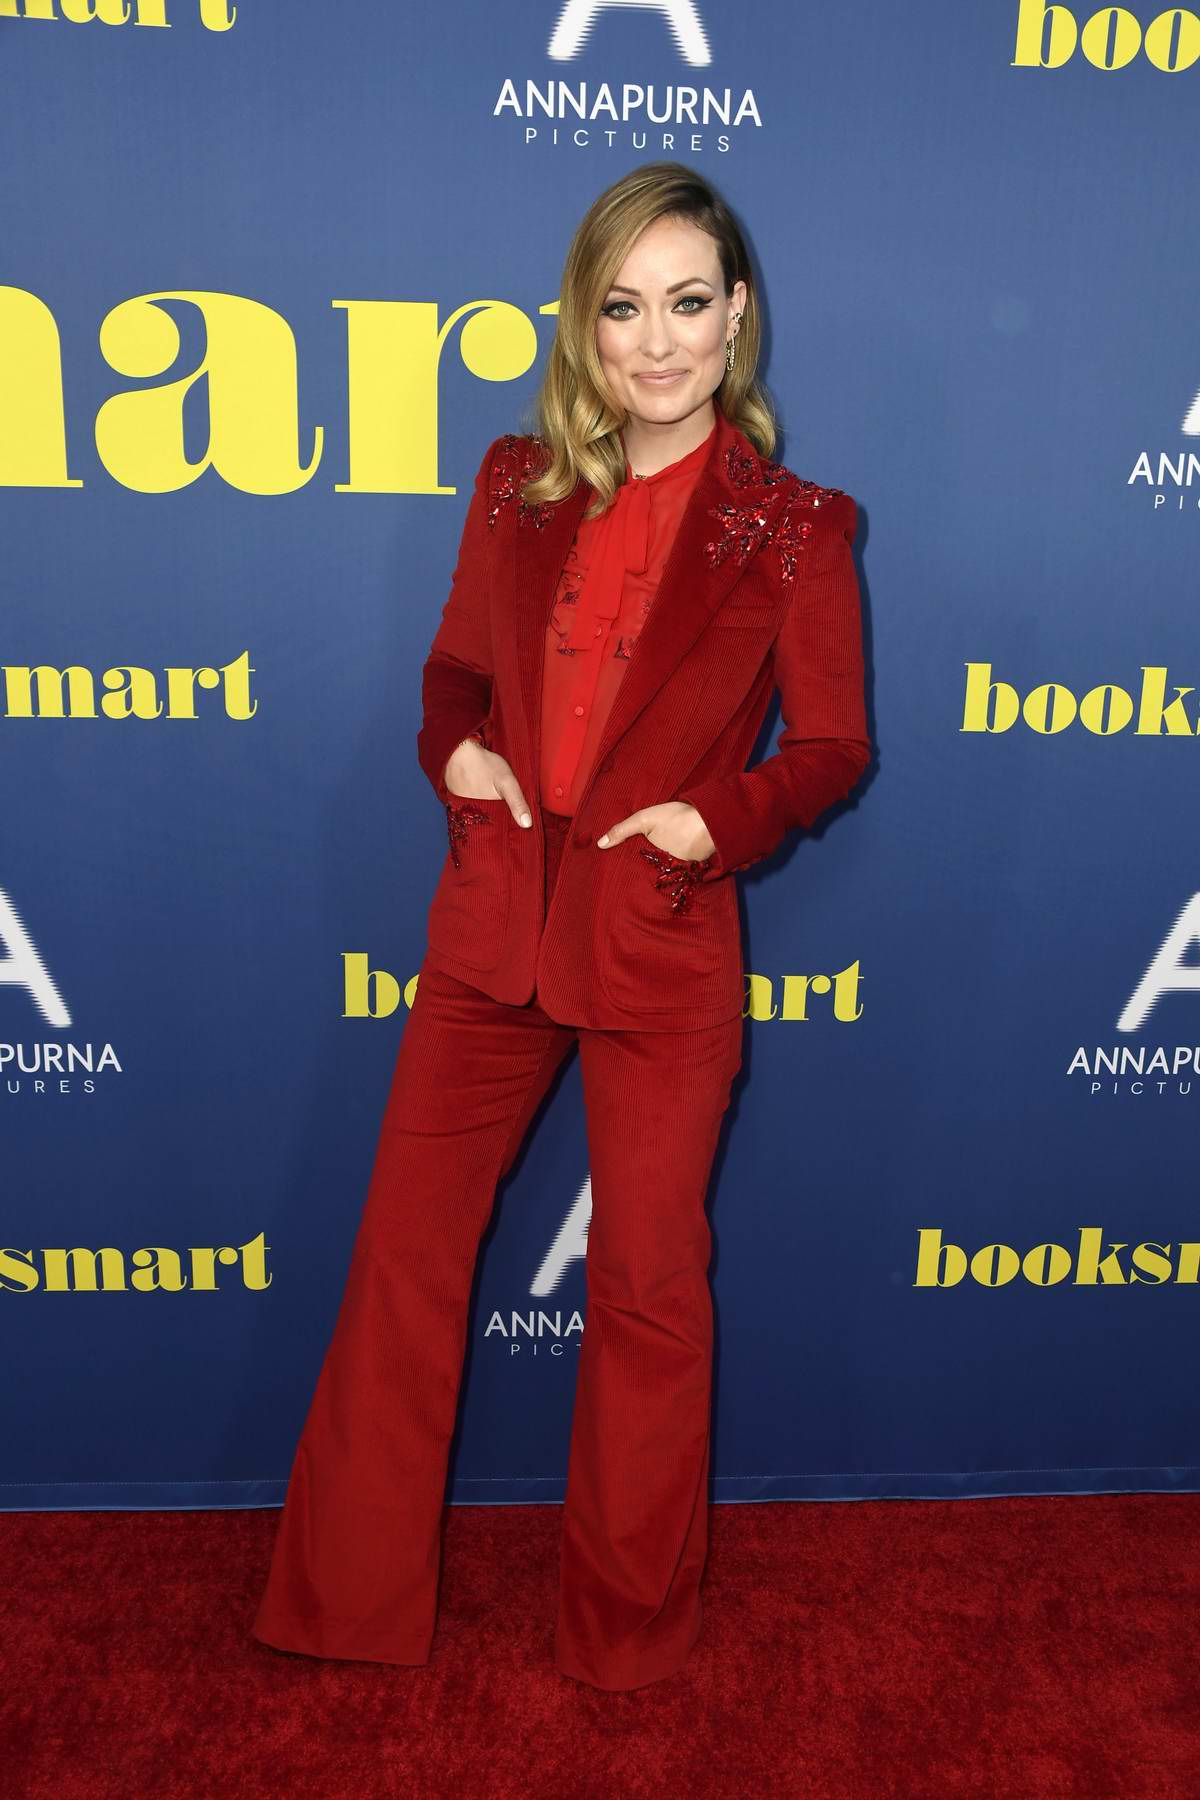 Olivia Wilde attends the special screening of 'Booksmart' at Ace Hotel in Los Angeles